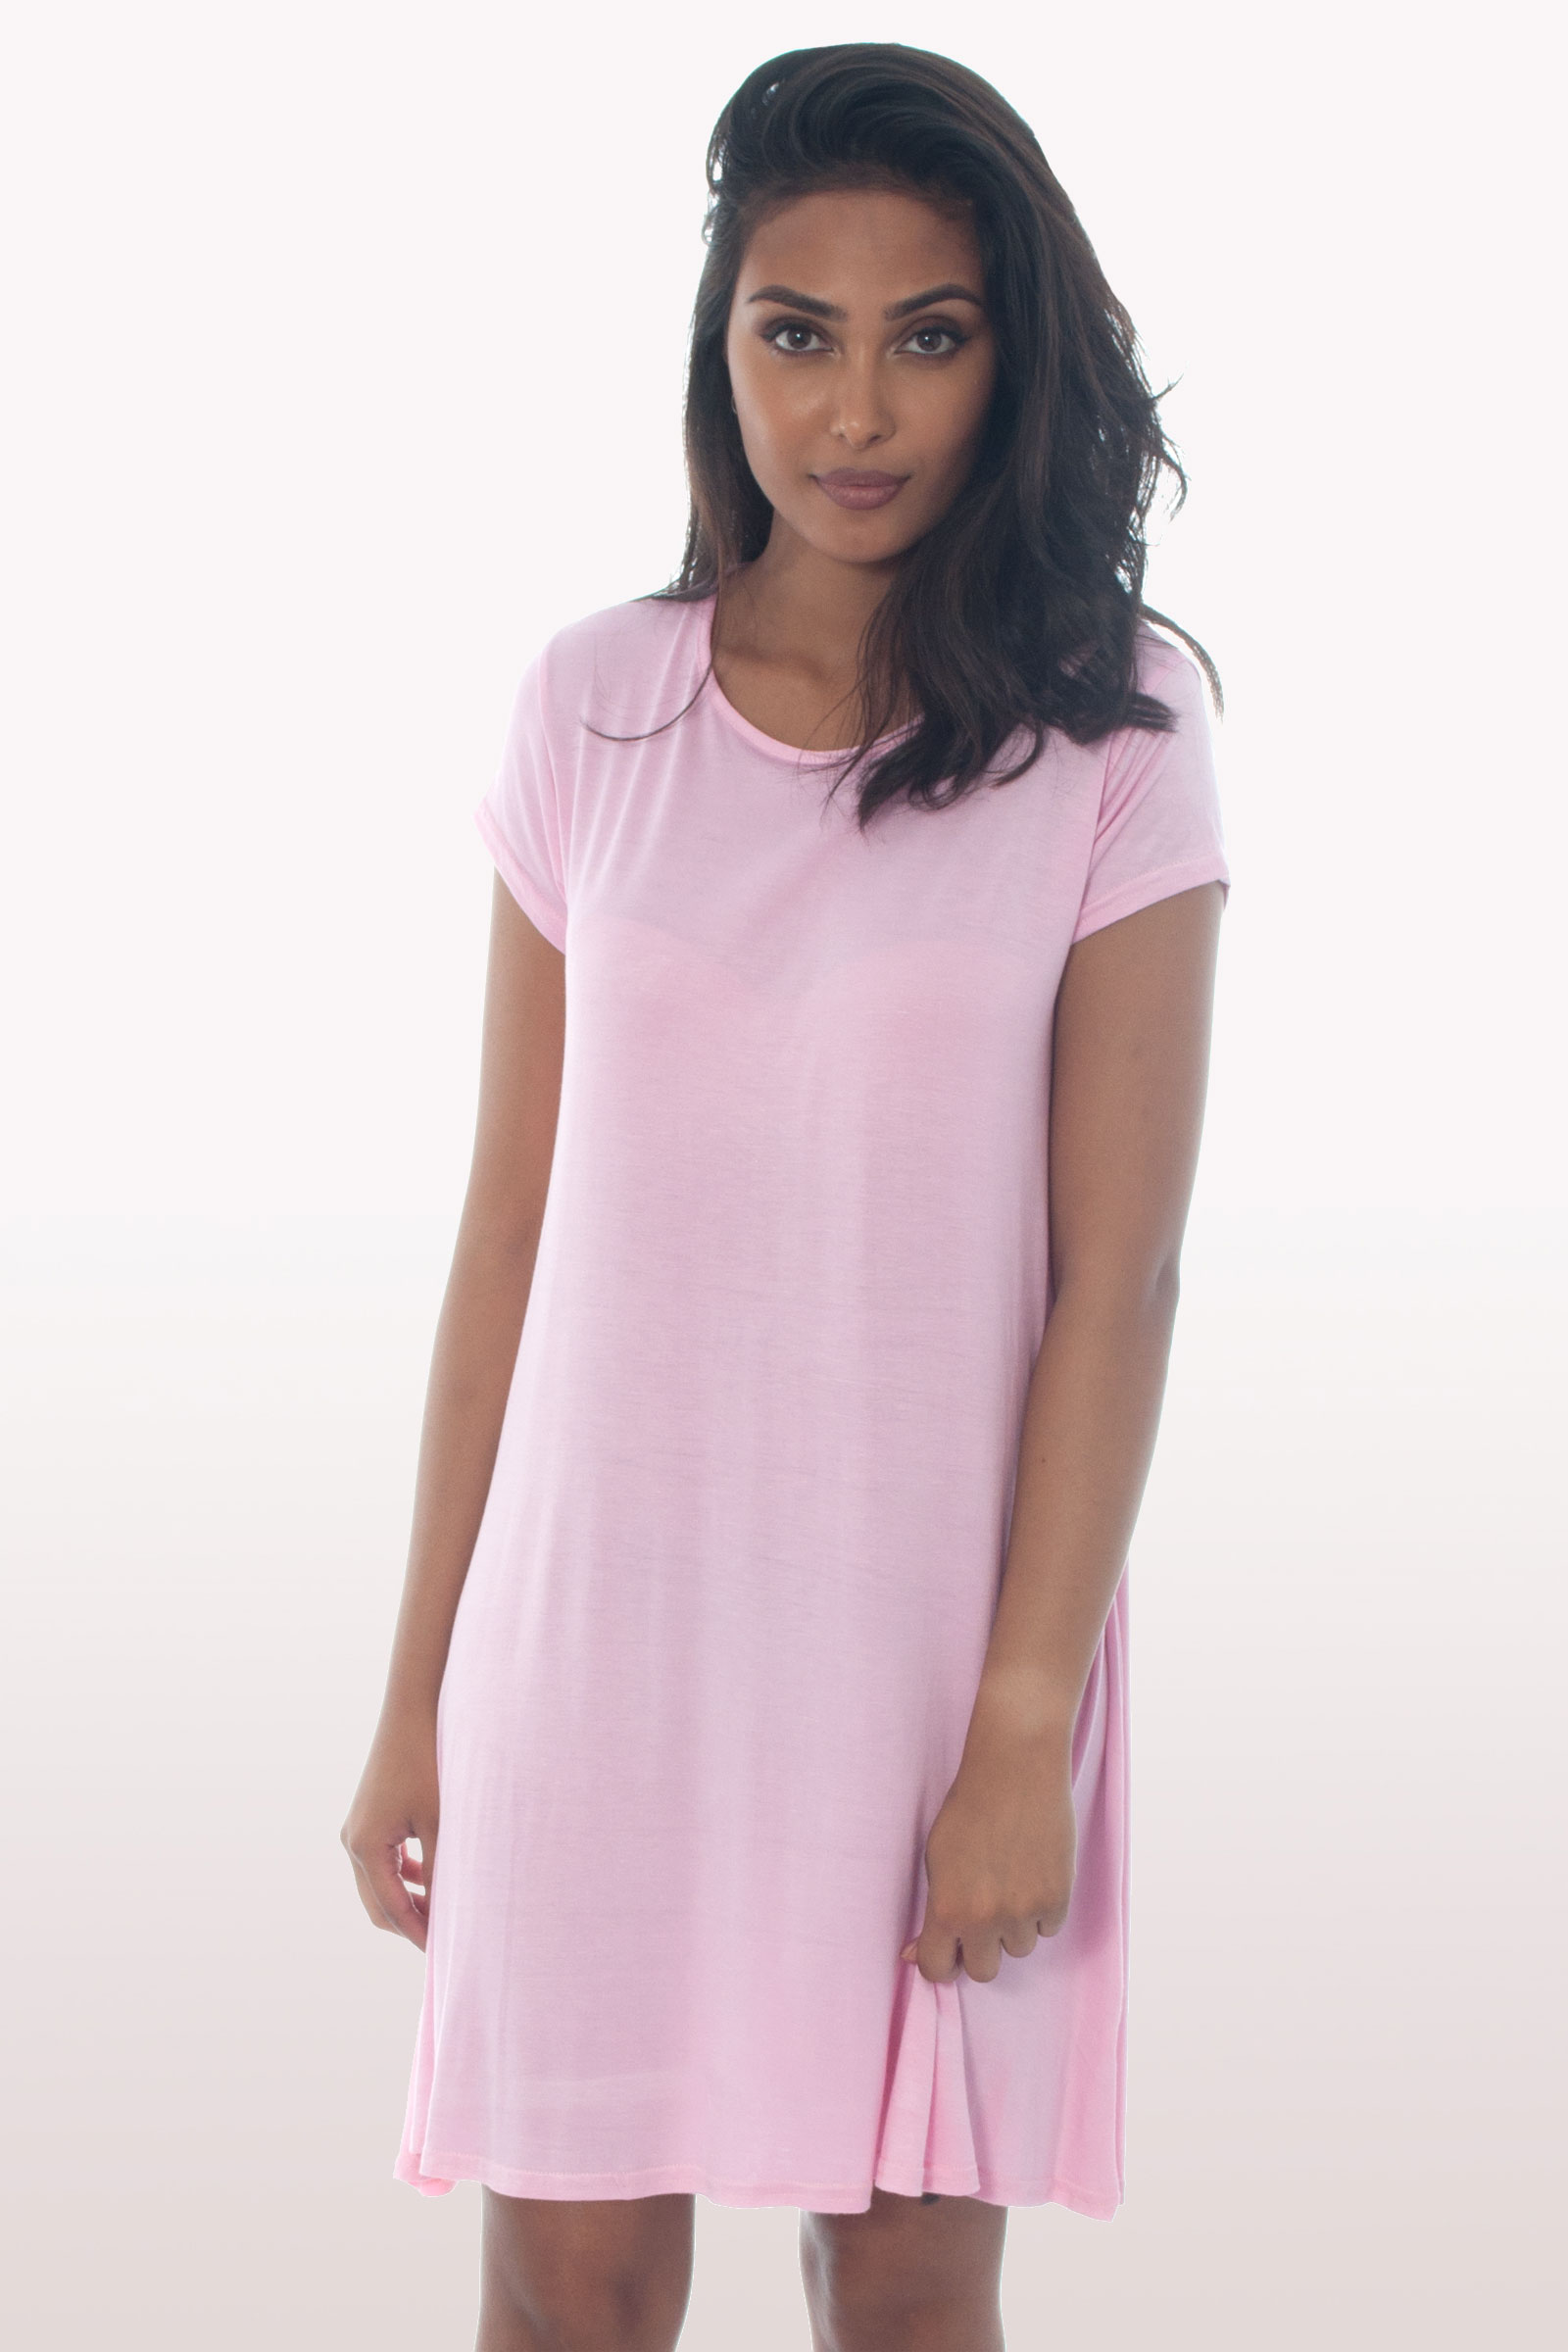 Baby Pink Short Sleeve Swing Dress Dresses